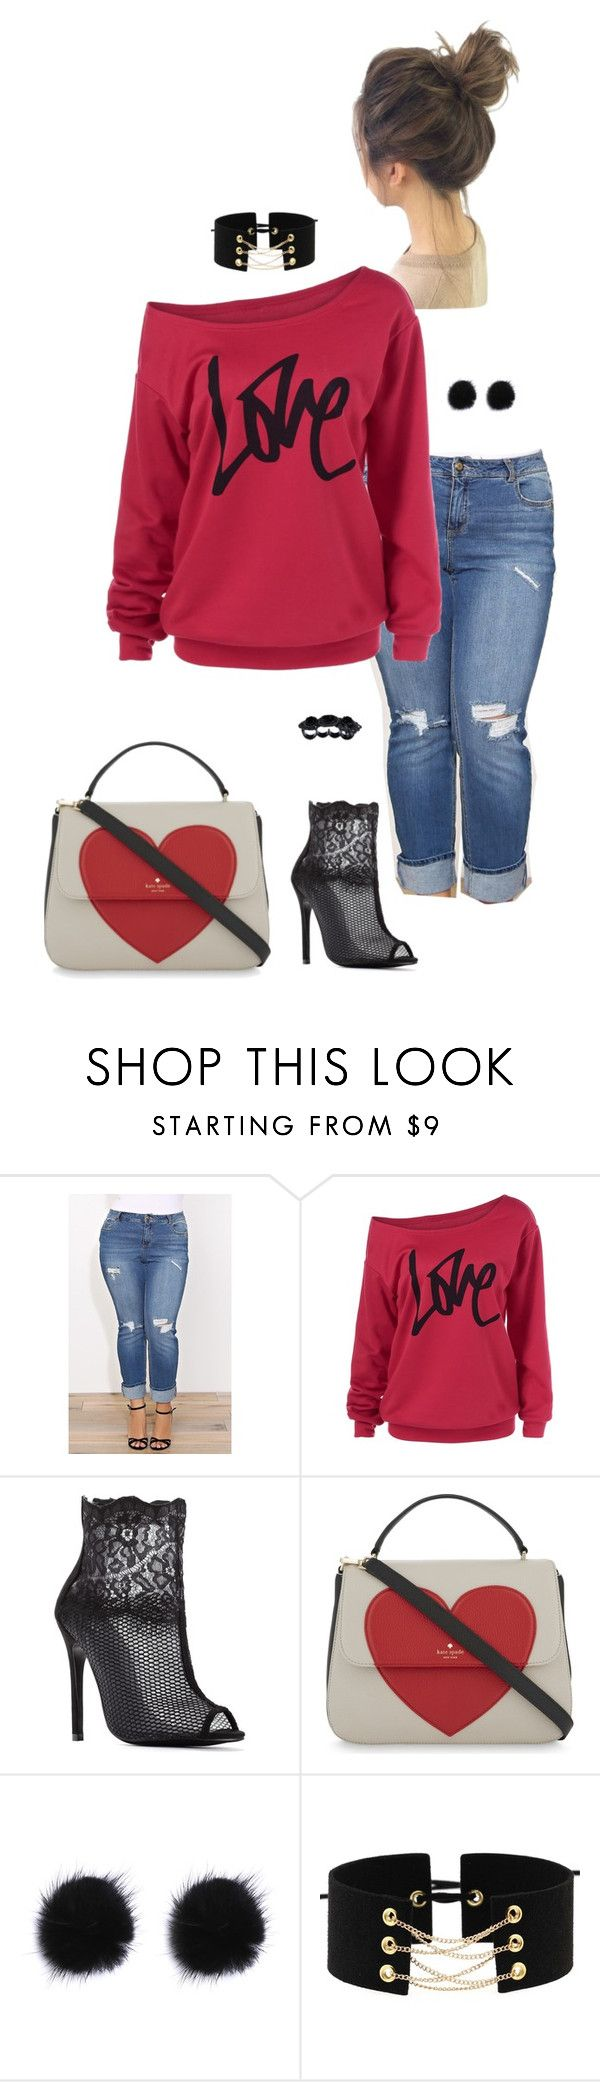 """""""All shook up- plus size"""" by gchamama ❤ liked on Polyvore featuring Kate Spade and Dsquared2"""